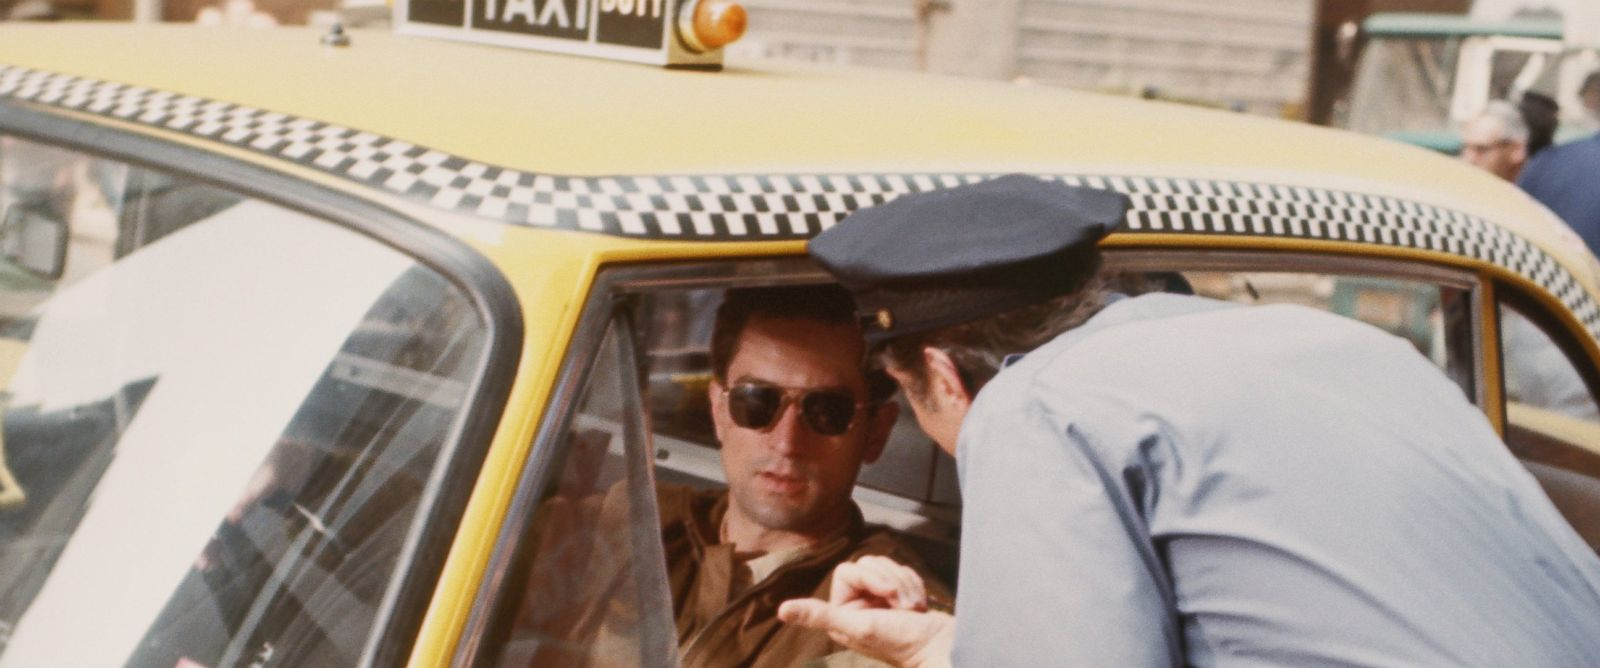 PHOTO: Robert De Niro performs a scene in Taxi Driver directed by Martin Scorsese in 1976 in New York.